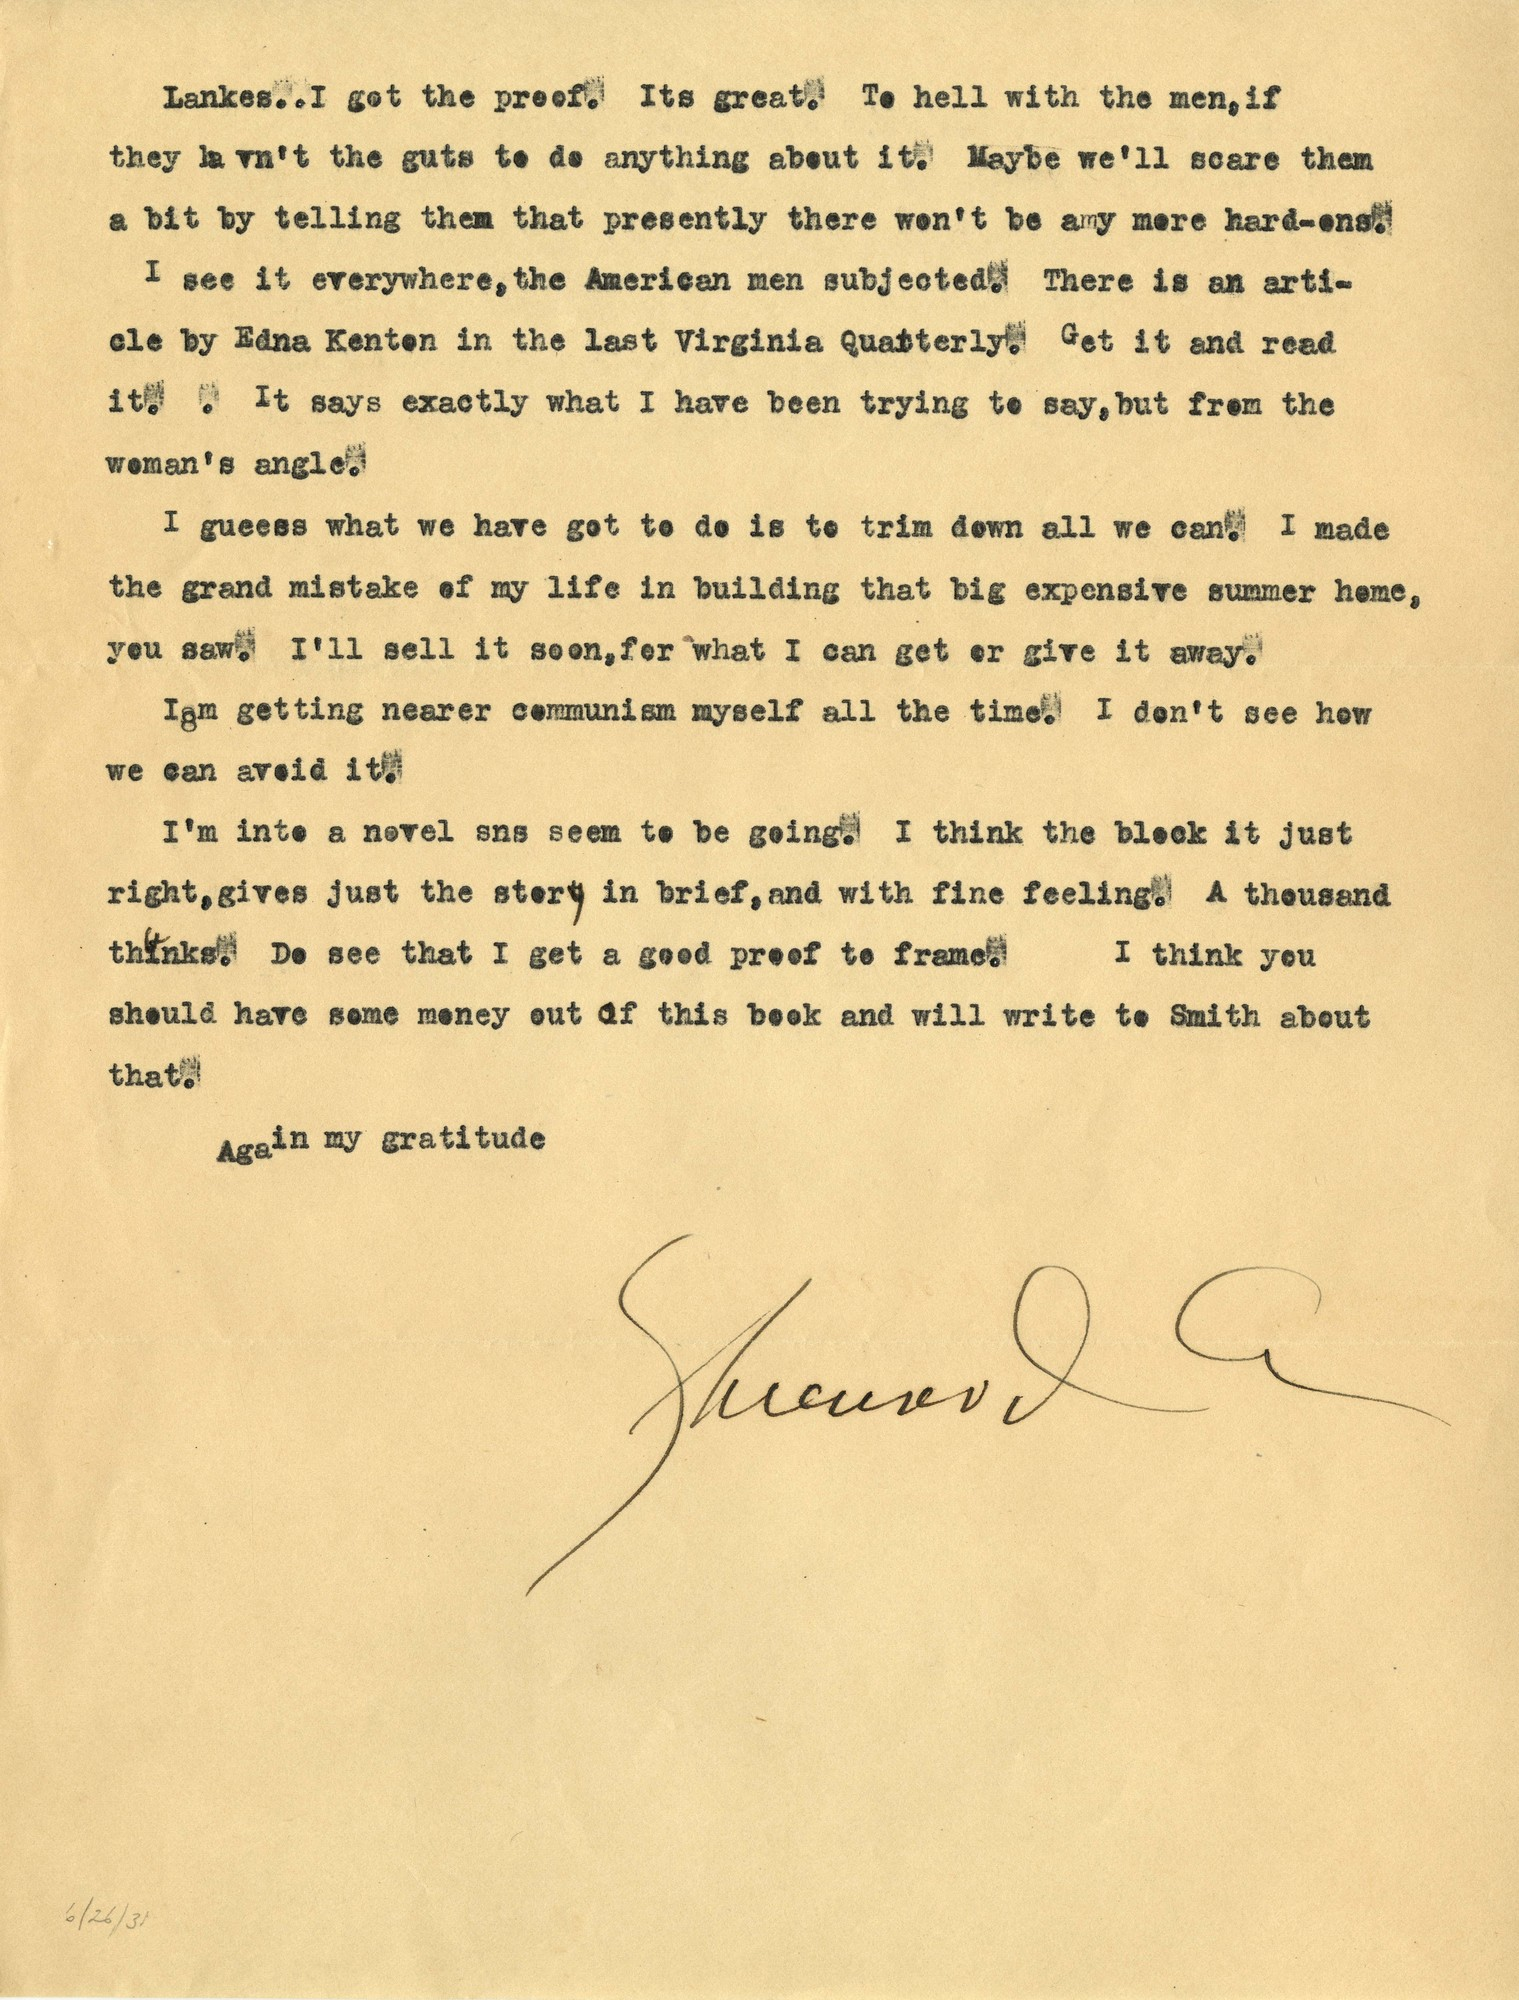 Letter, Sherwood Anderson to J. J. Lankes, June 26, 1931 (Ms2015-020)